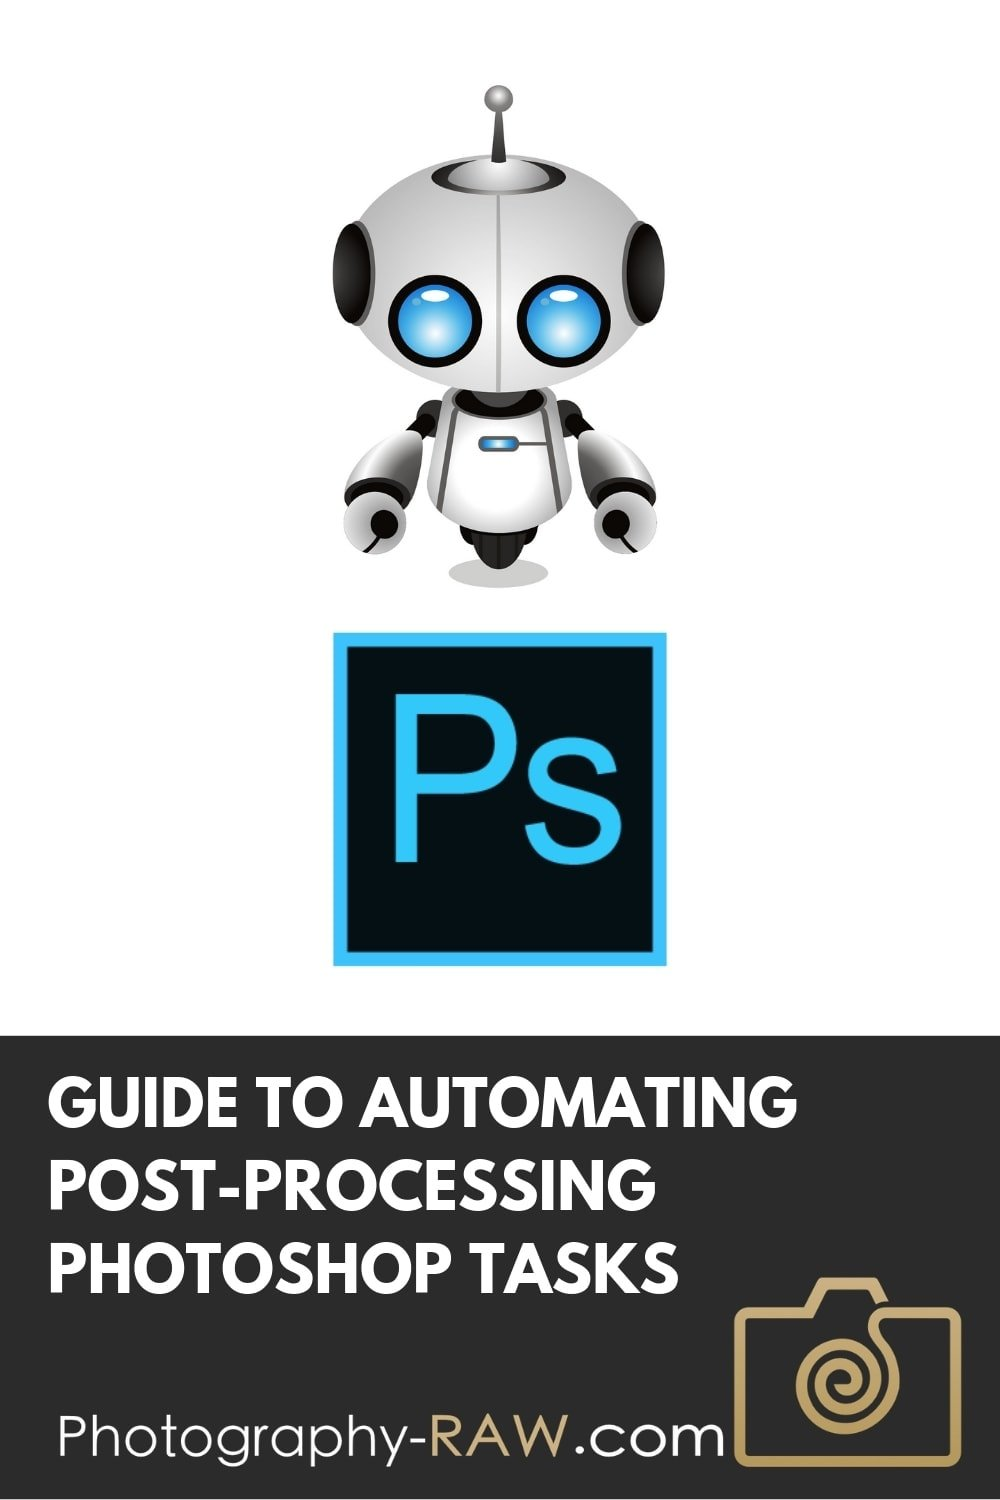 How To Automate Post-Processing in Photoshop